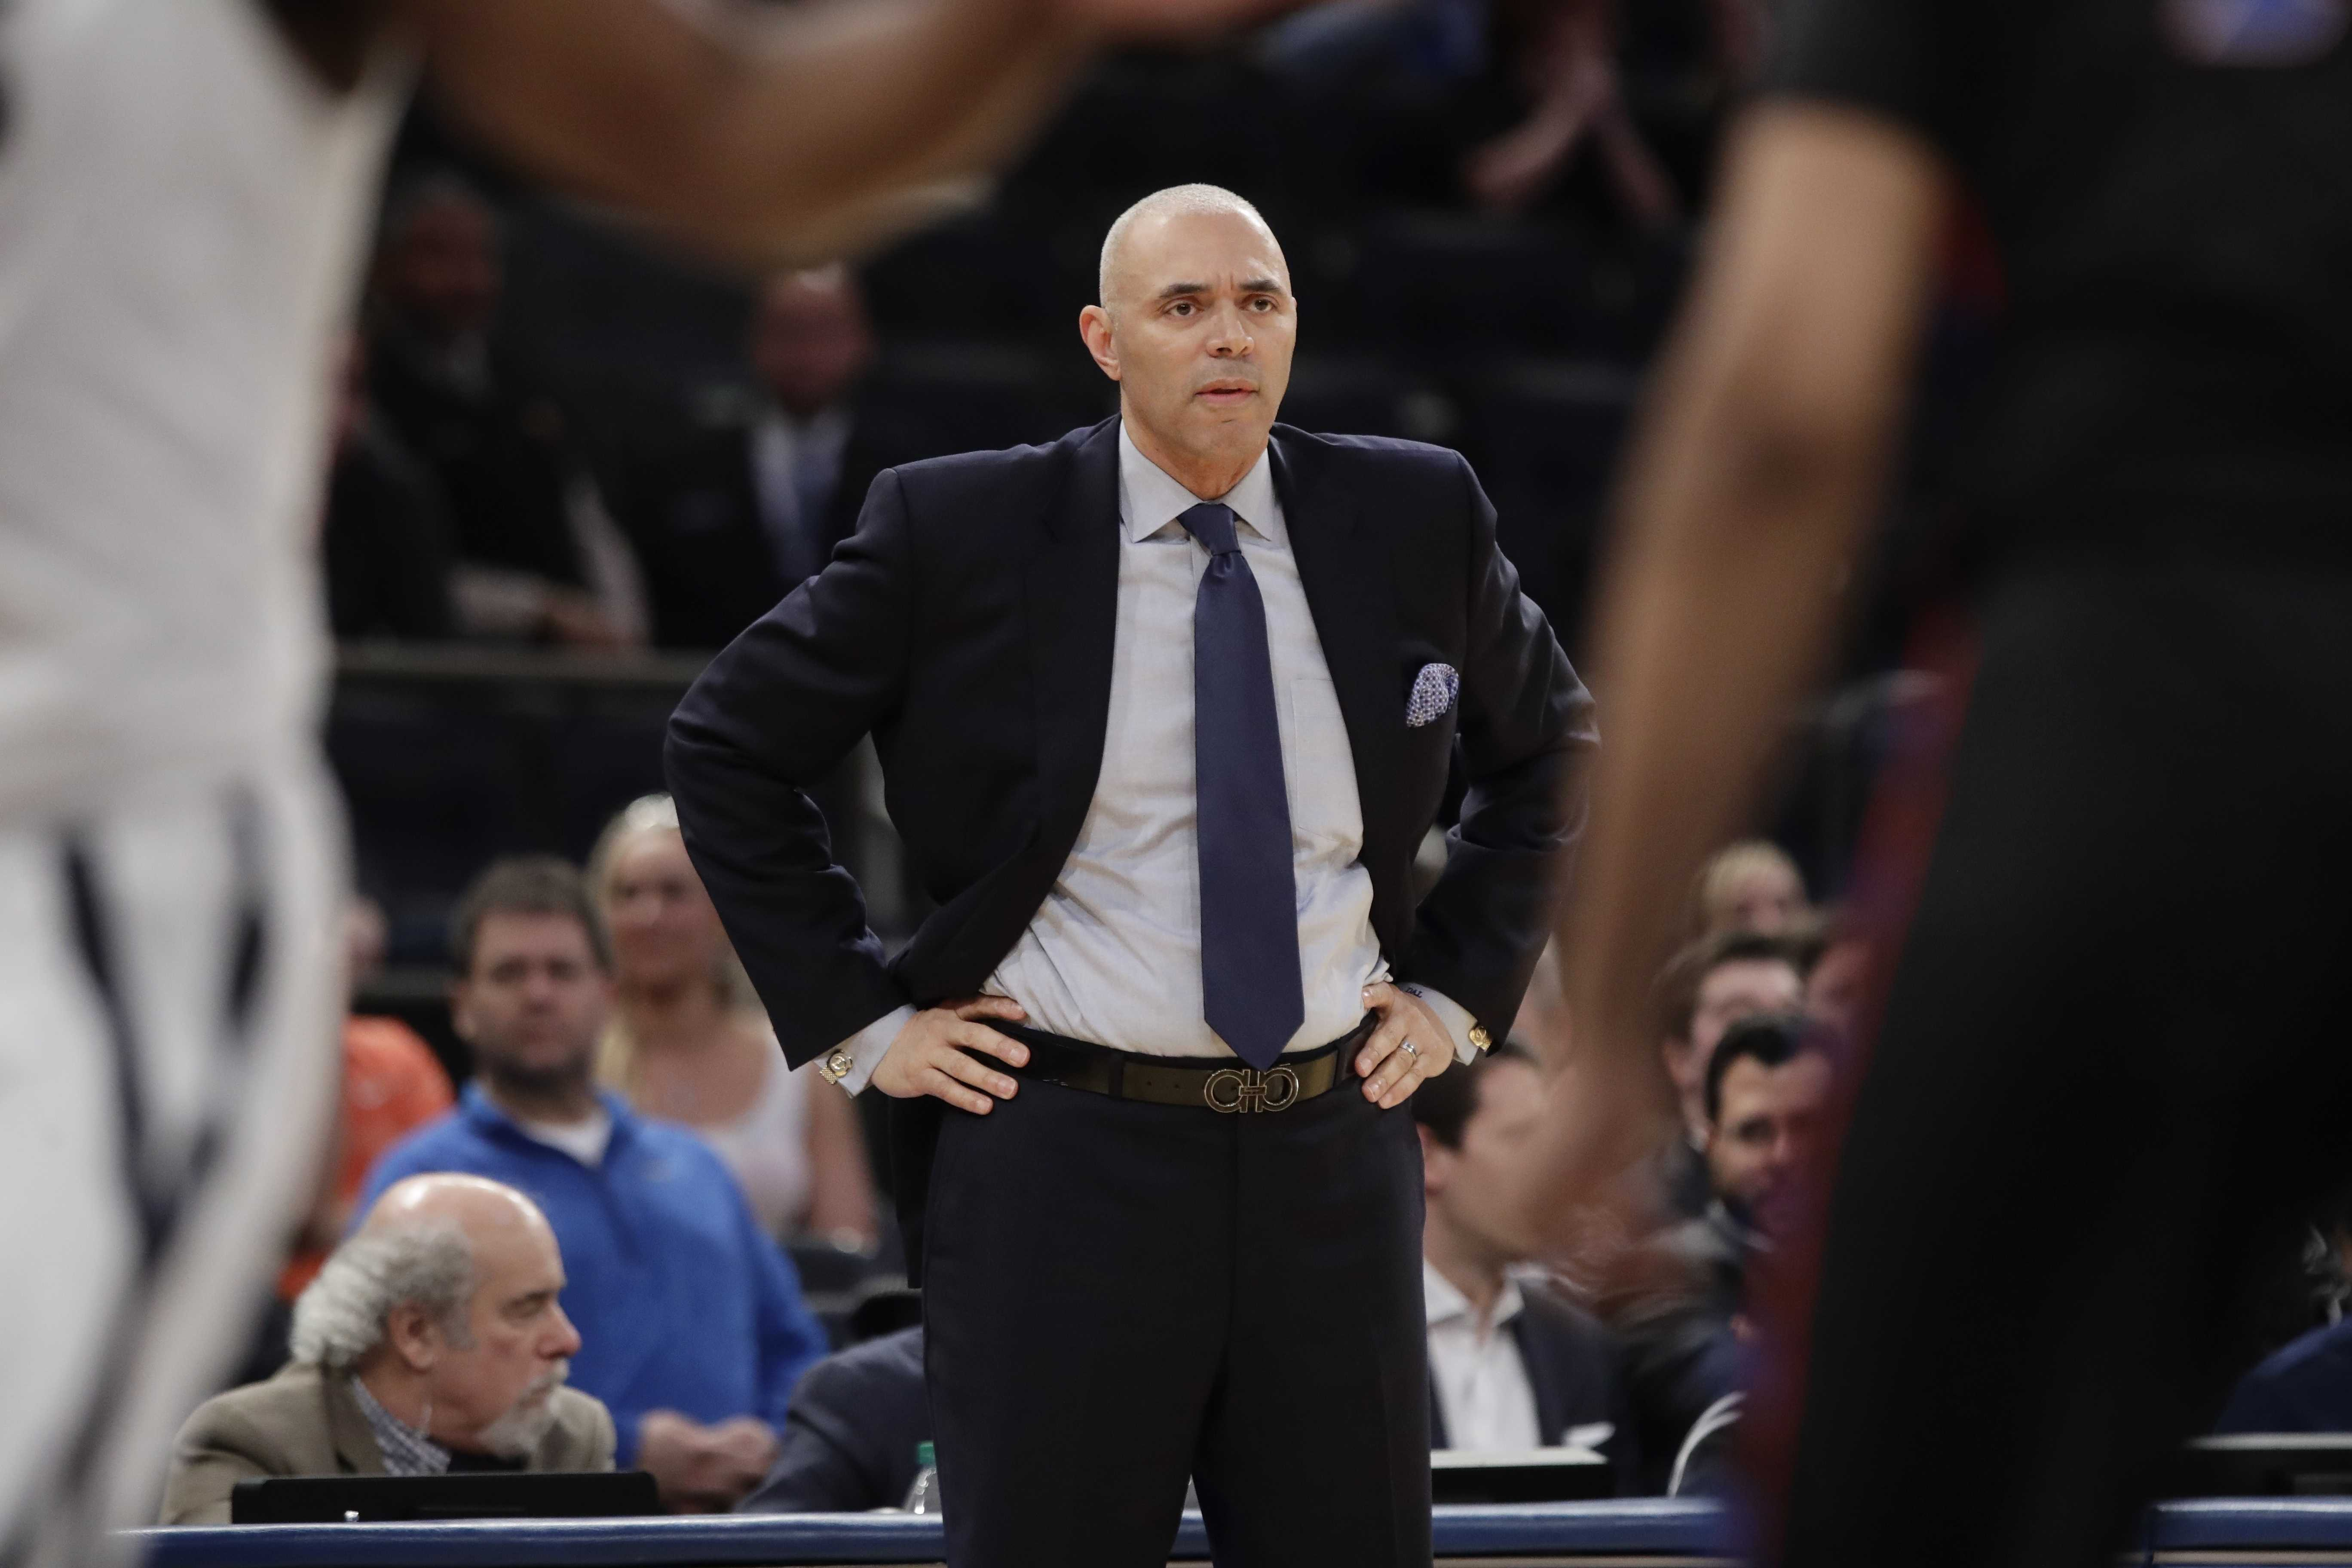 DePaul head coach Dave Leitao. (AP Photo/Frank Franklin II)